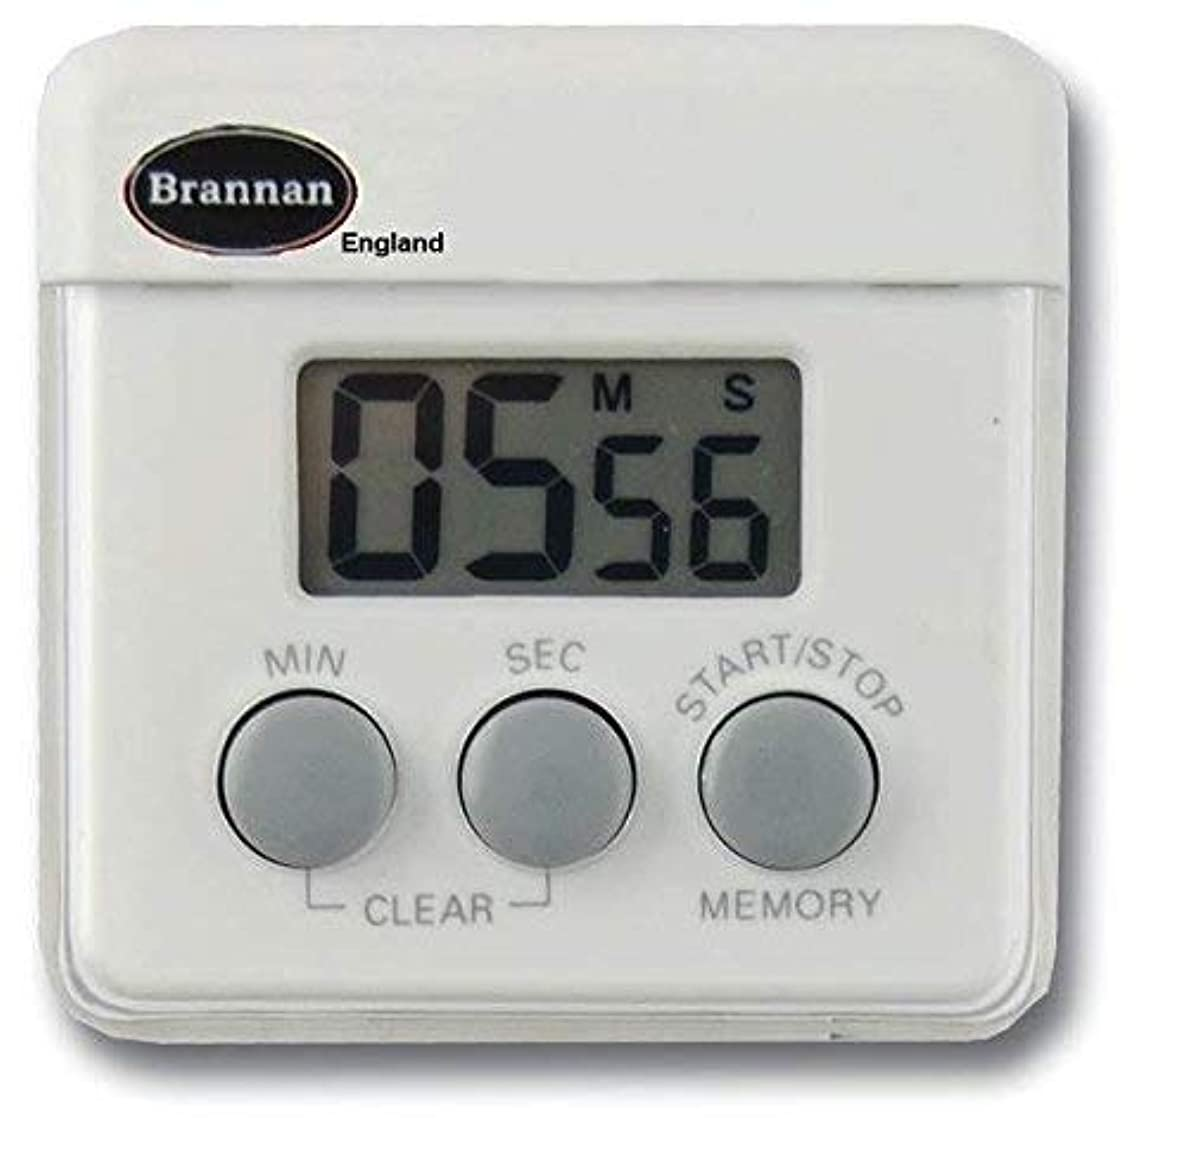 Mini Digital Countdown Timer - An Ideal Timer for the Kitchen